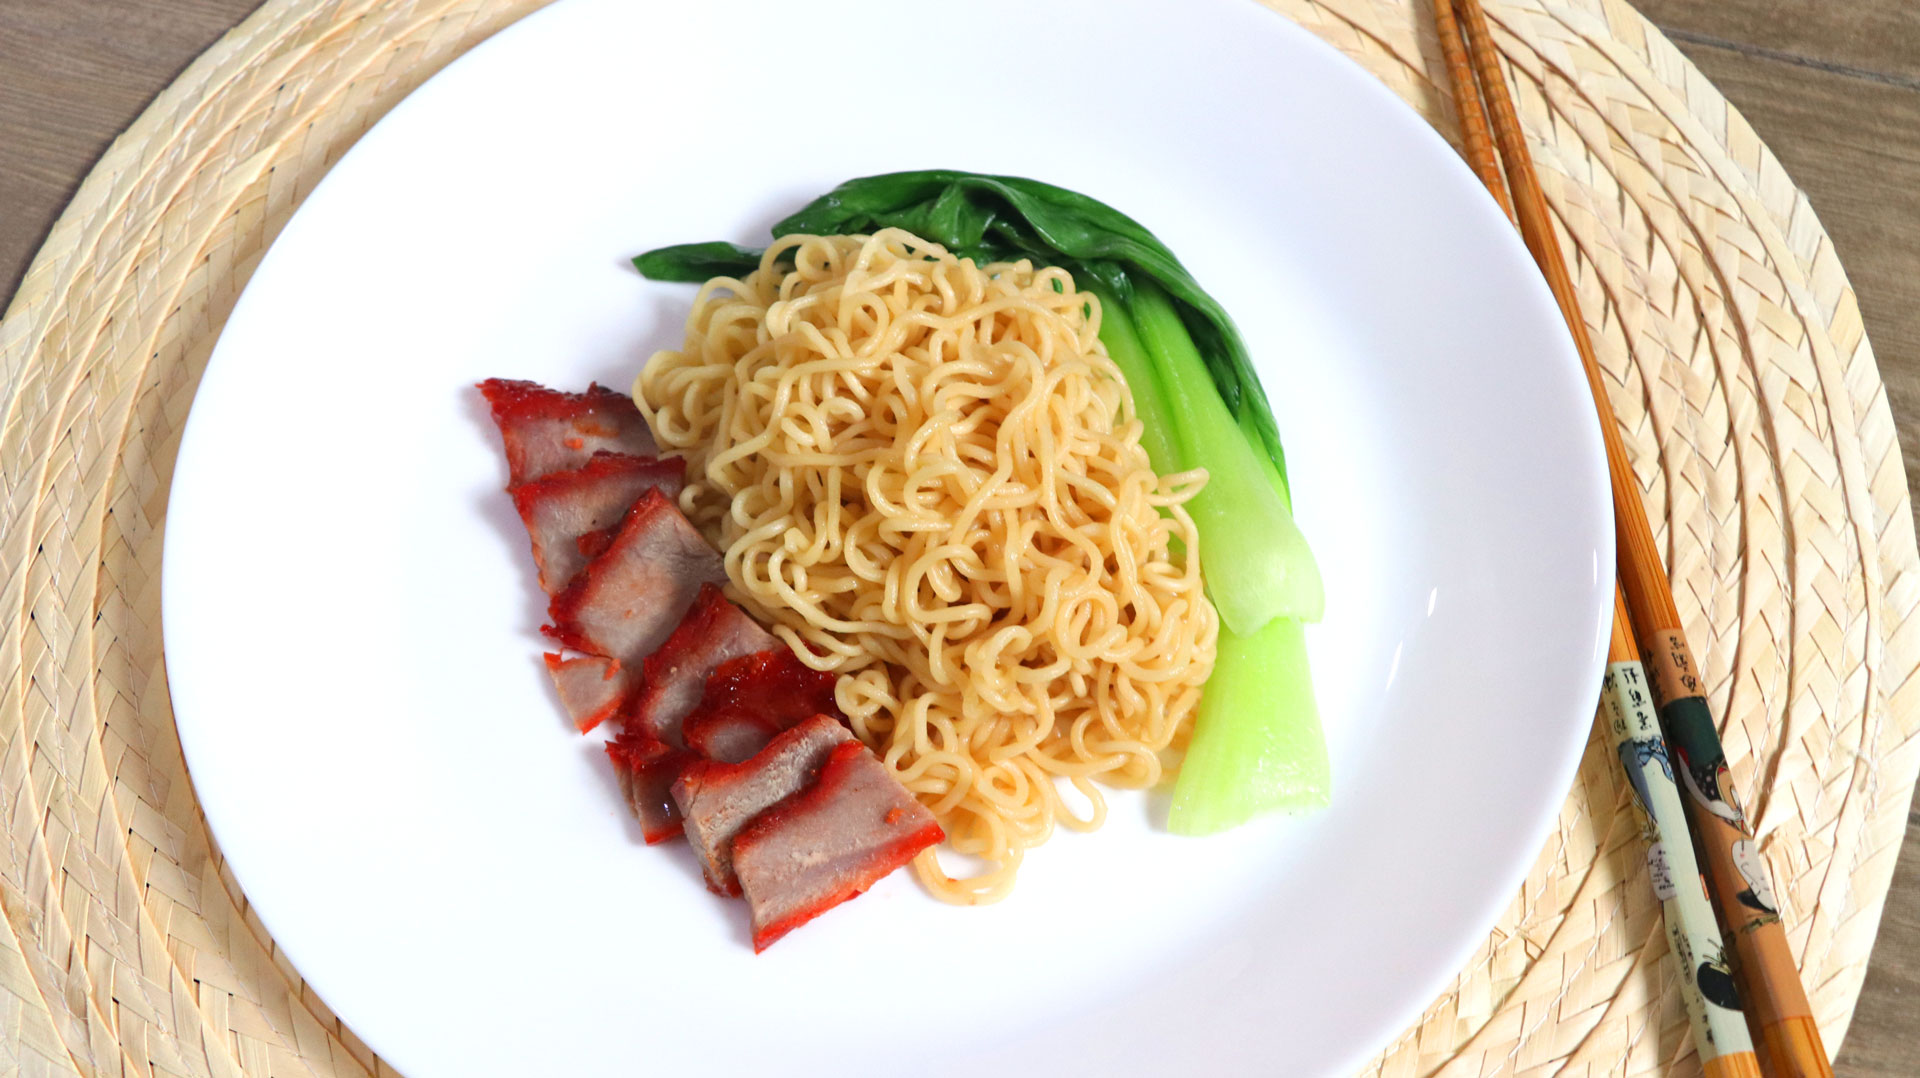 two-bad-chefs-wanton-noodles-dish-03.jpg